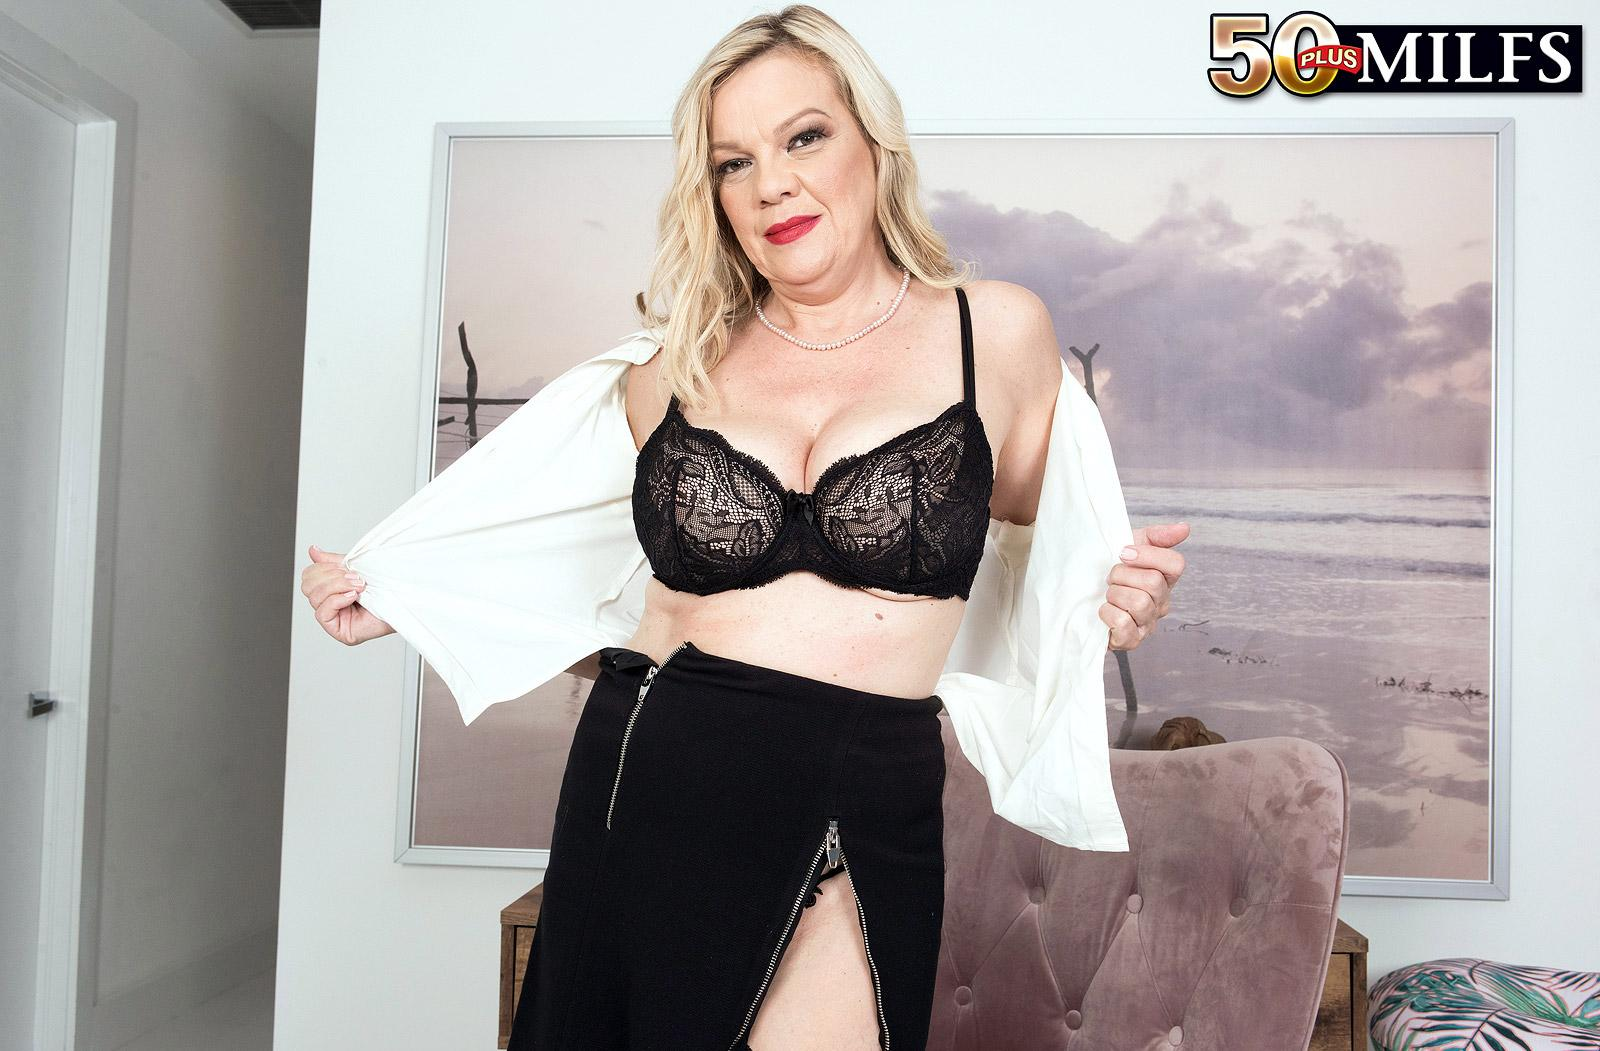 Lena Lewis, a 50 years old busty mature women spreading her legs picture 4